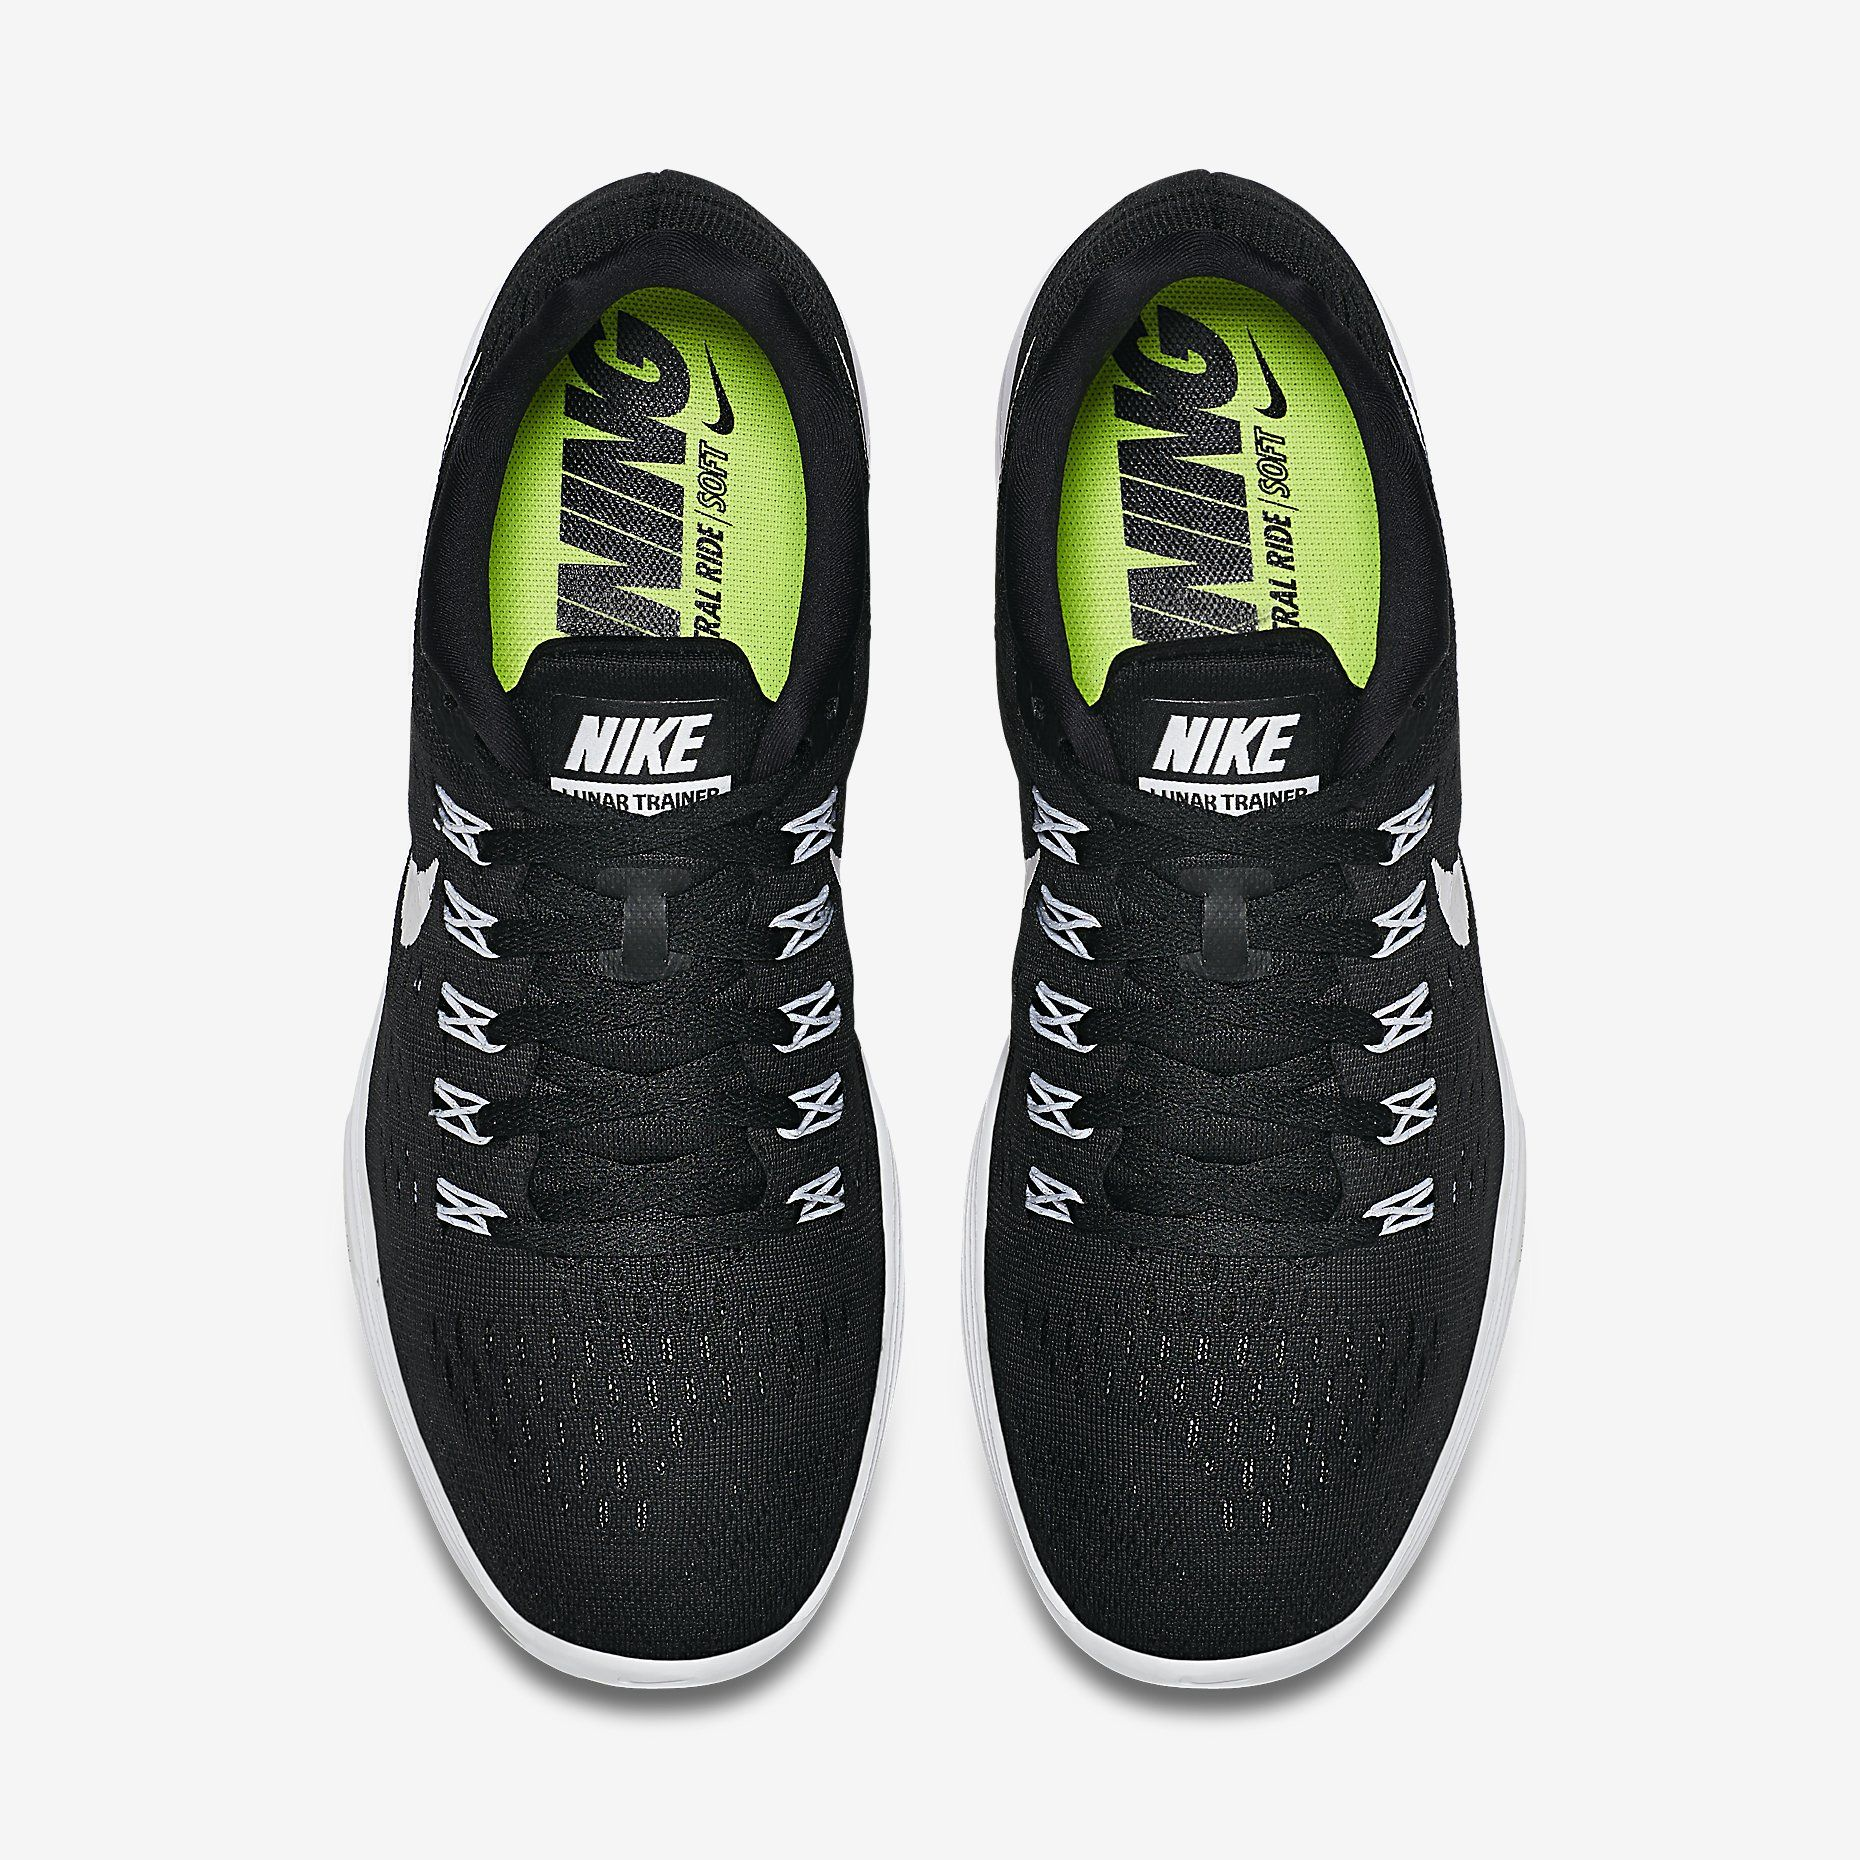 242f37813e37f Sneakers Nike LunarTempo – Chaussure de running pour Homme.